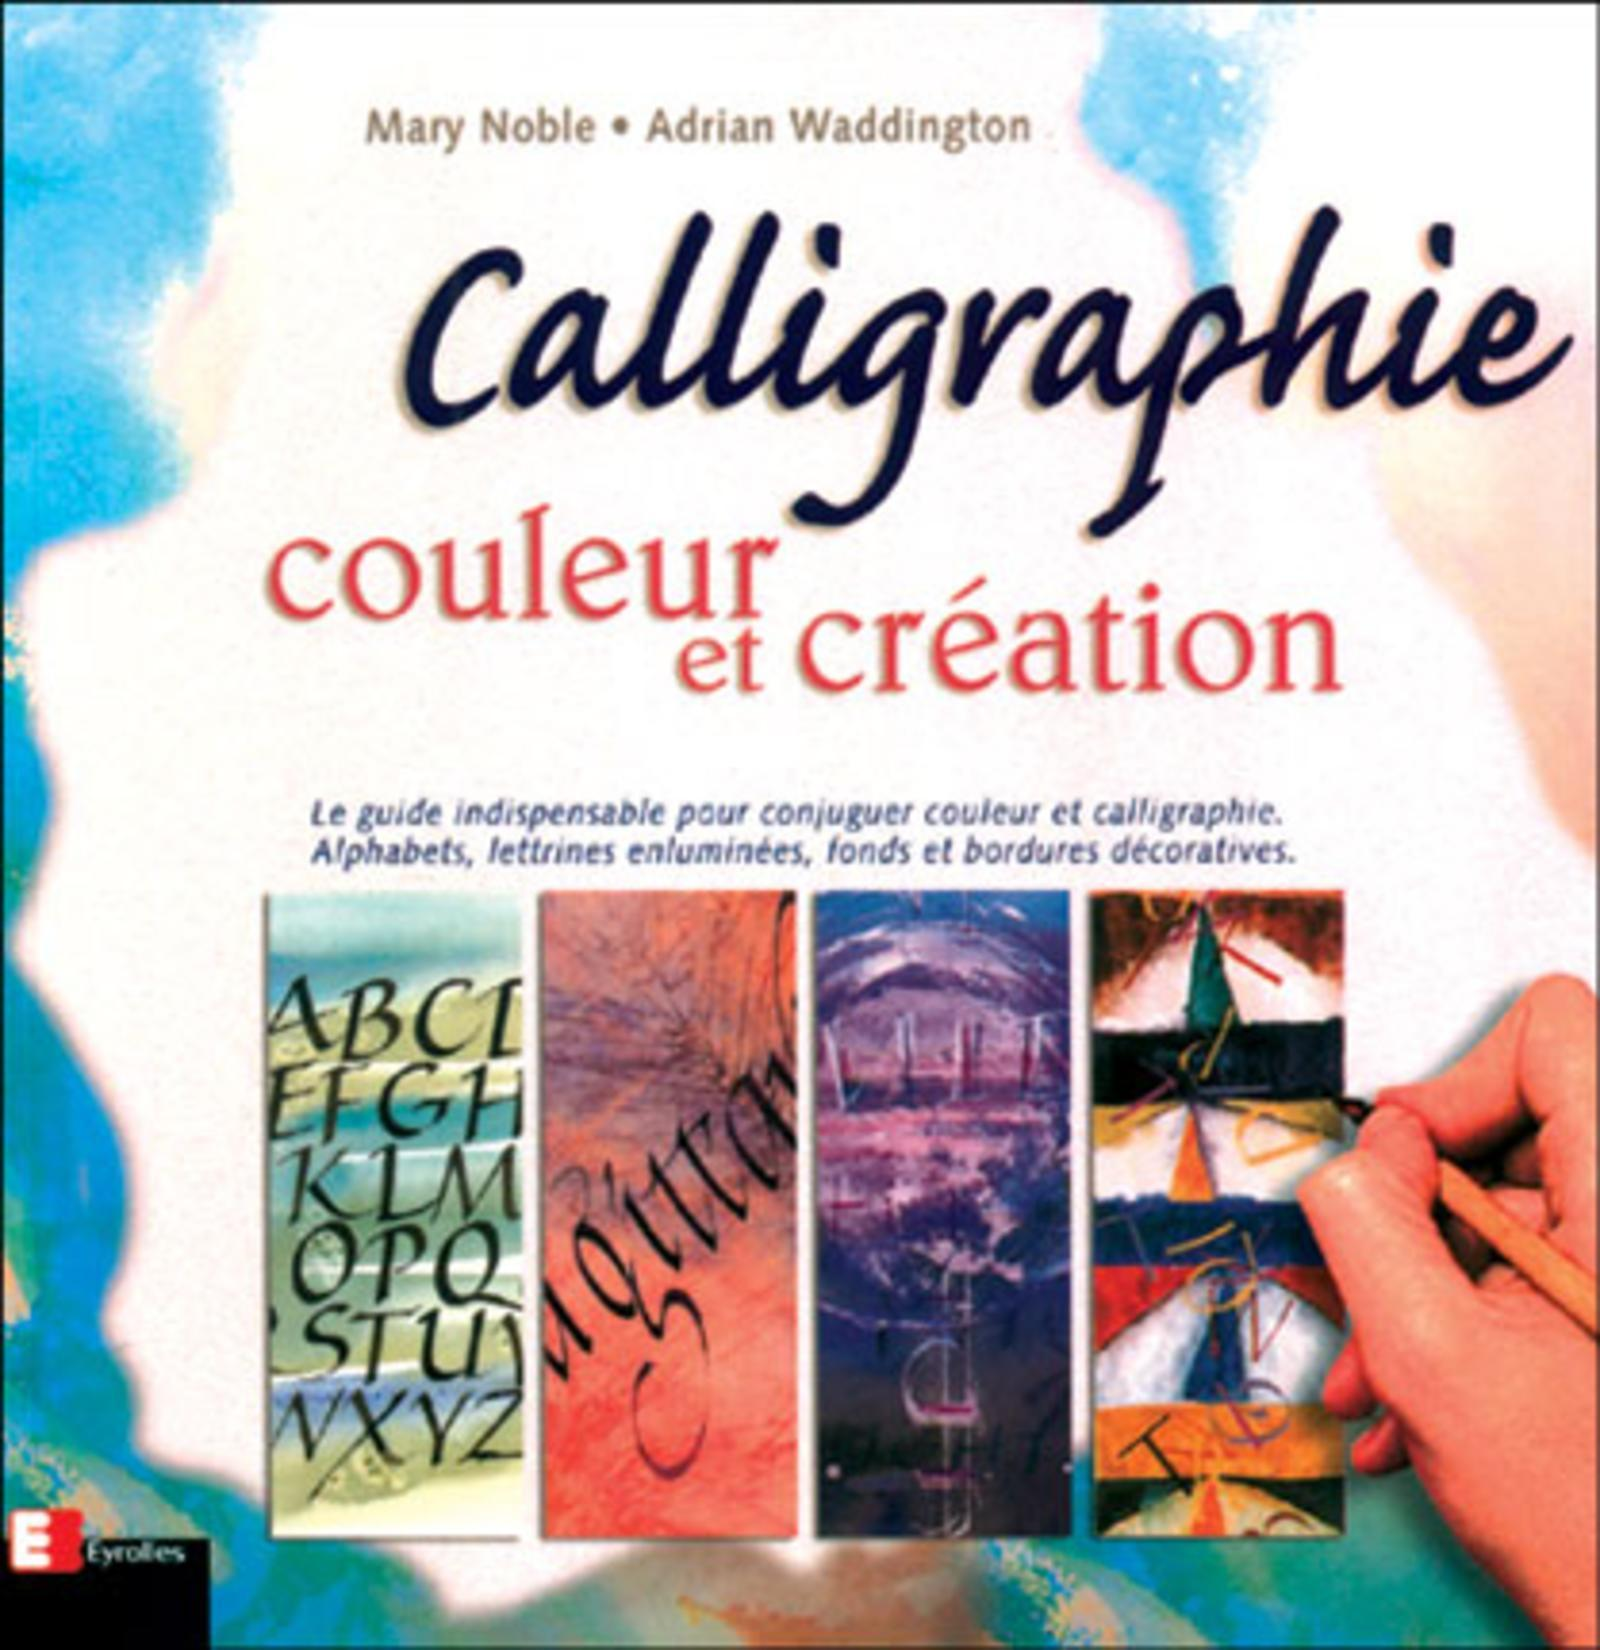 CALLIGRAPHIE, COULEUR & CREATION